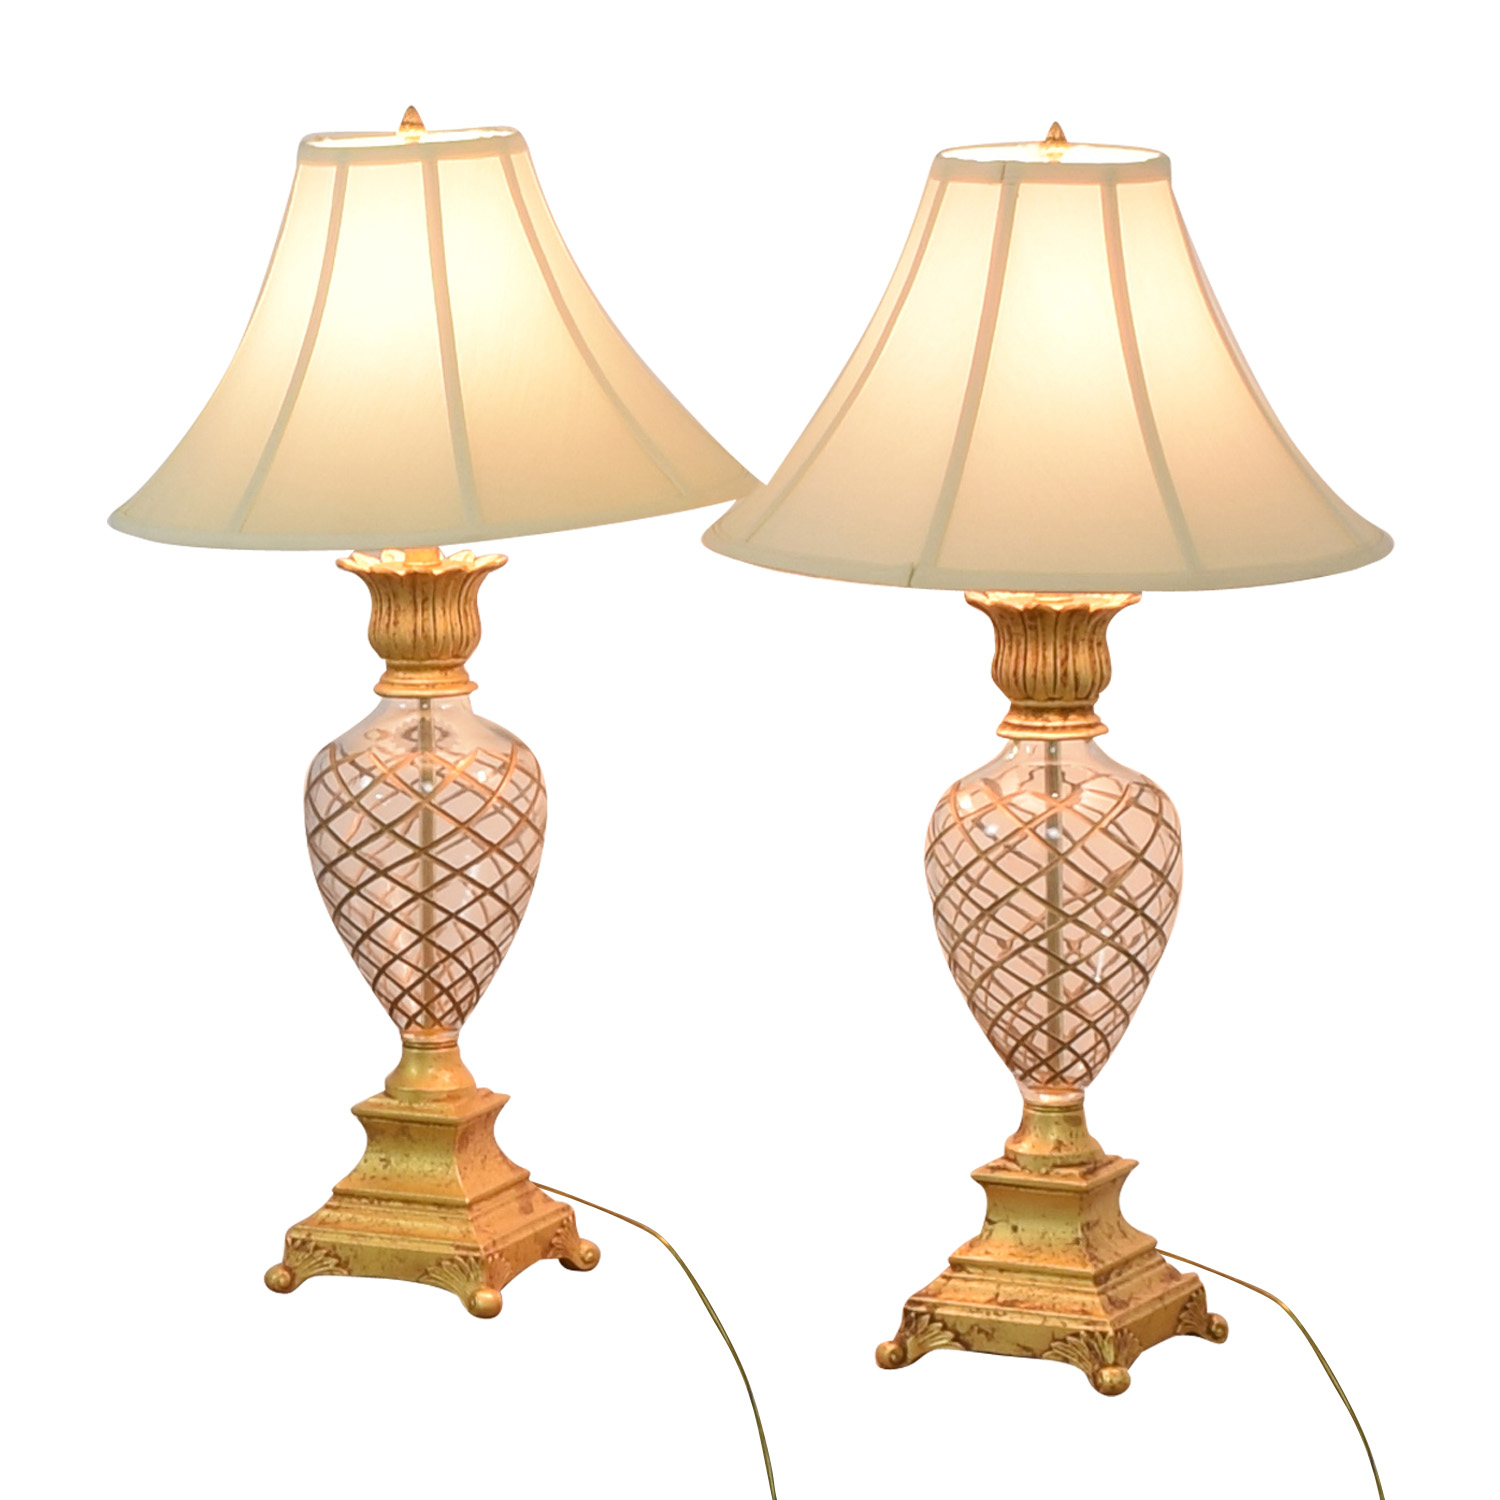 shop Ethan Allen Ethan Allen Table Lamps online